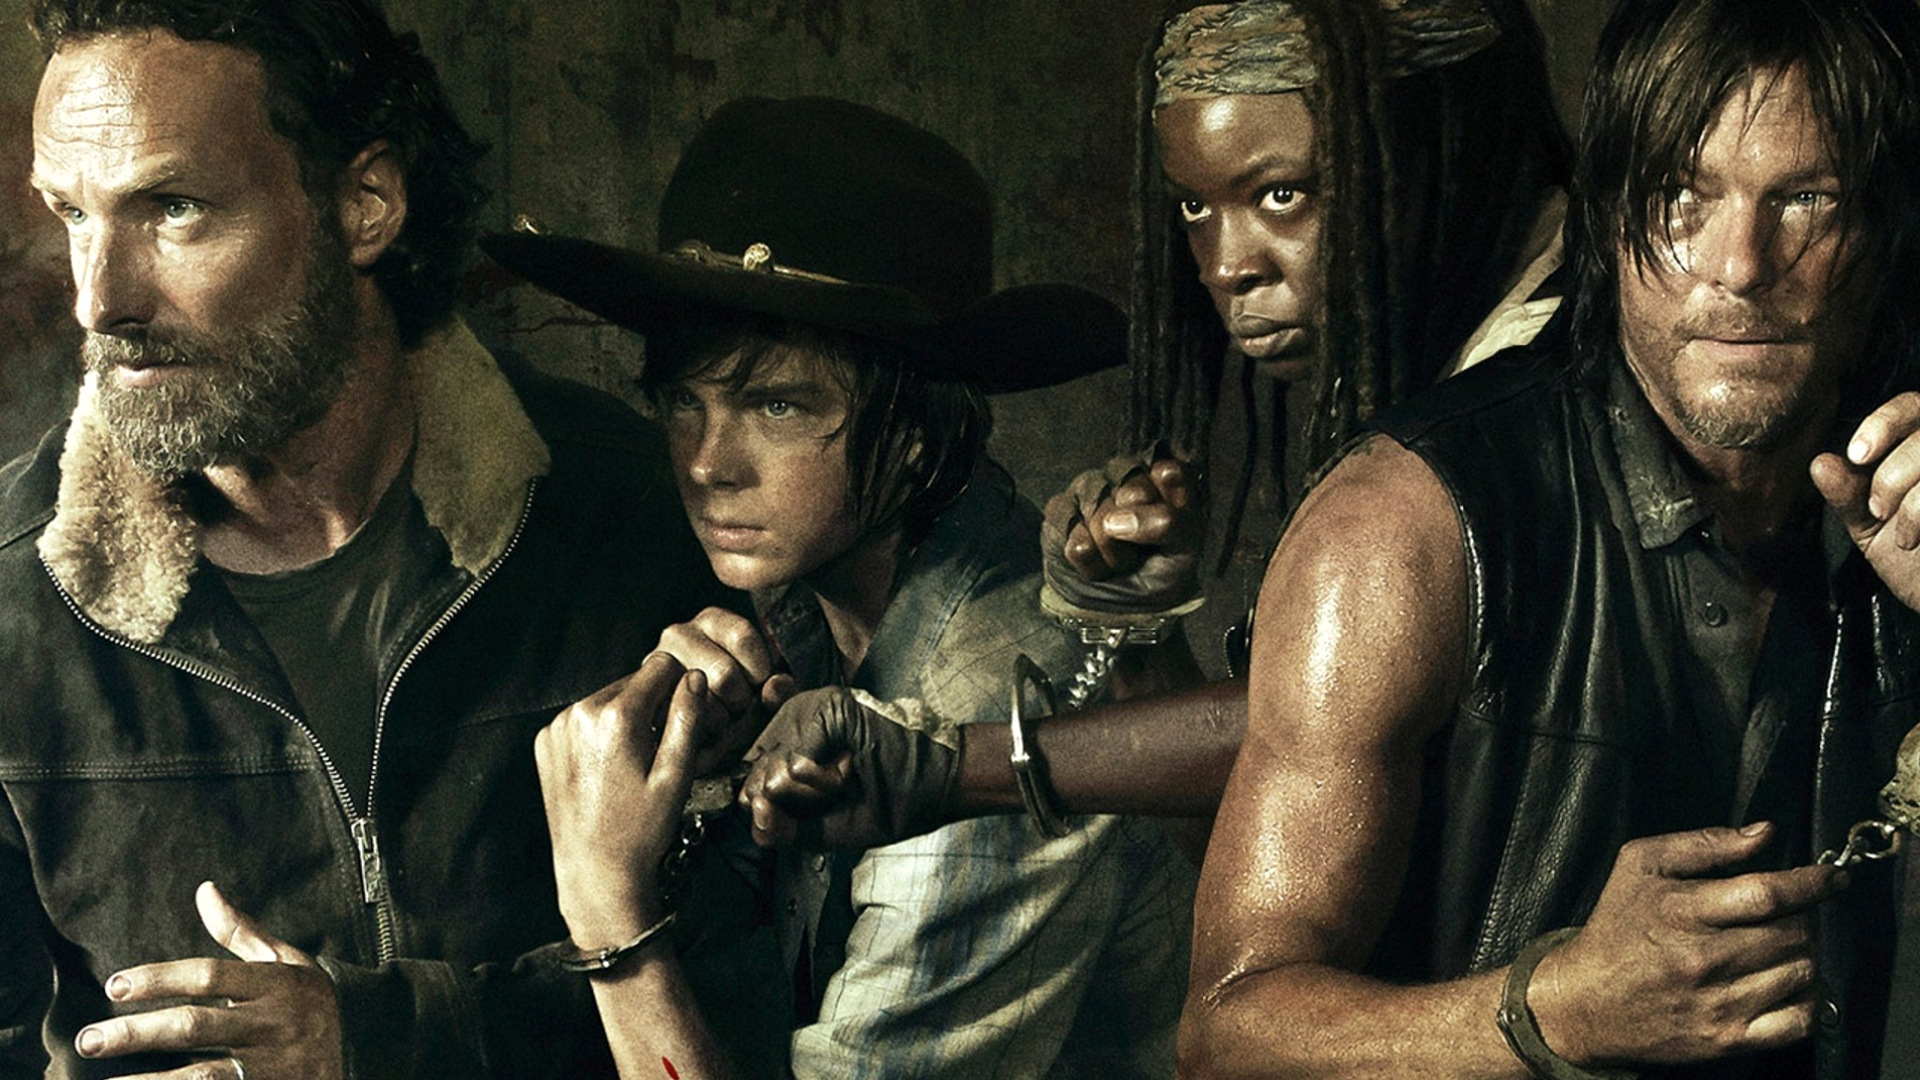 Walking Dead Wallpapers For Free Posted By Sarah Mercado